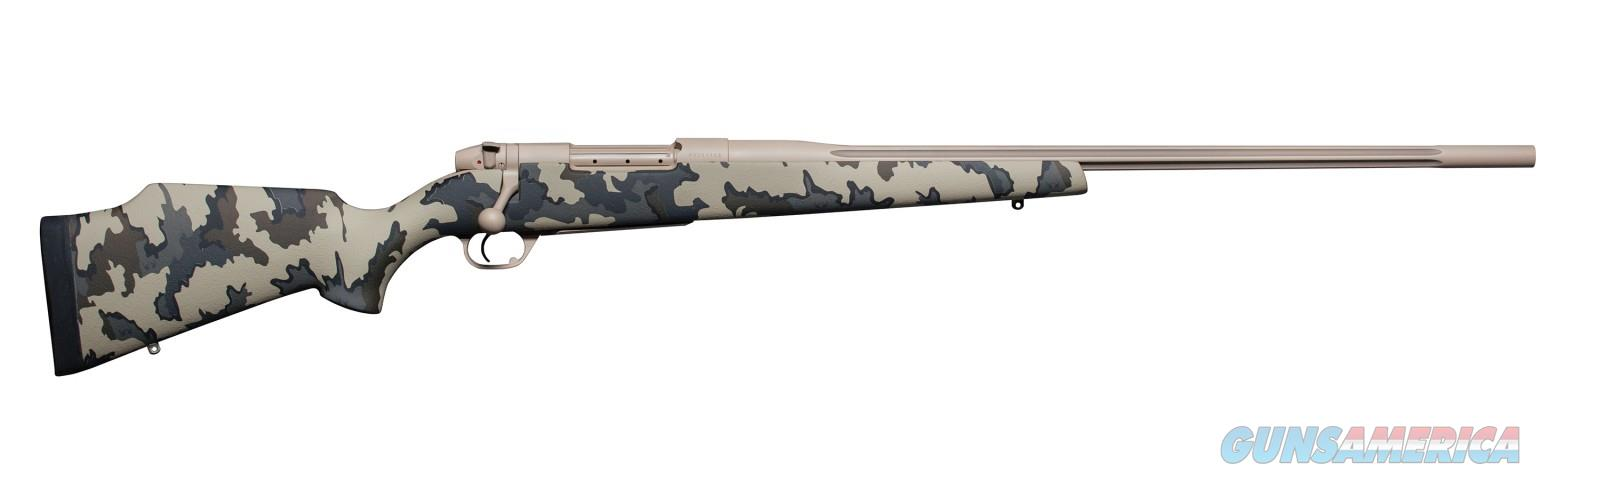 "Weatherby Mark V Arroyo .30-378 Wby. Mag 28"" Camo  MAOM303WR8B  Guns > Rifles > Weatherby Rifles > Sporting"